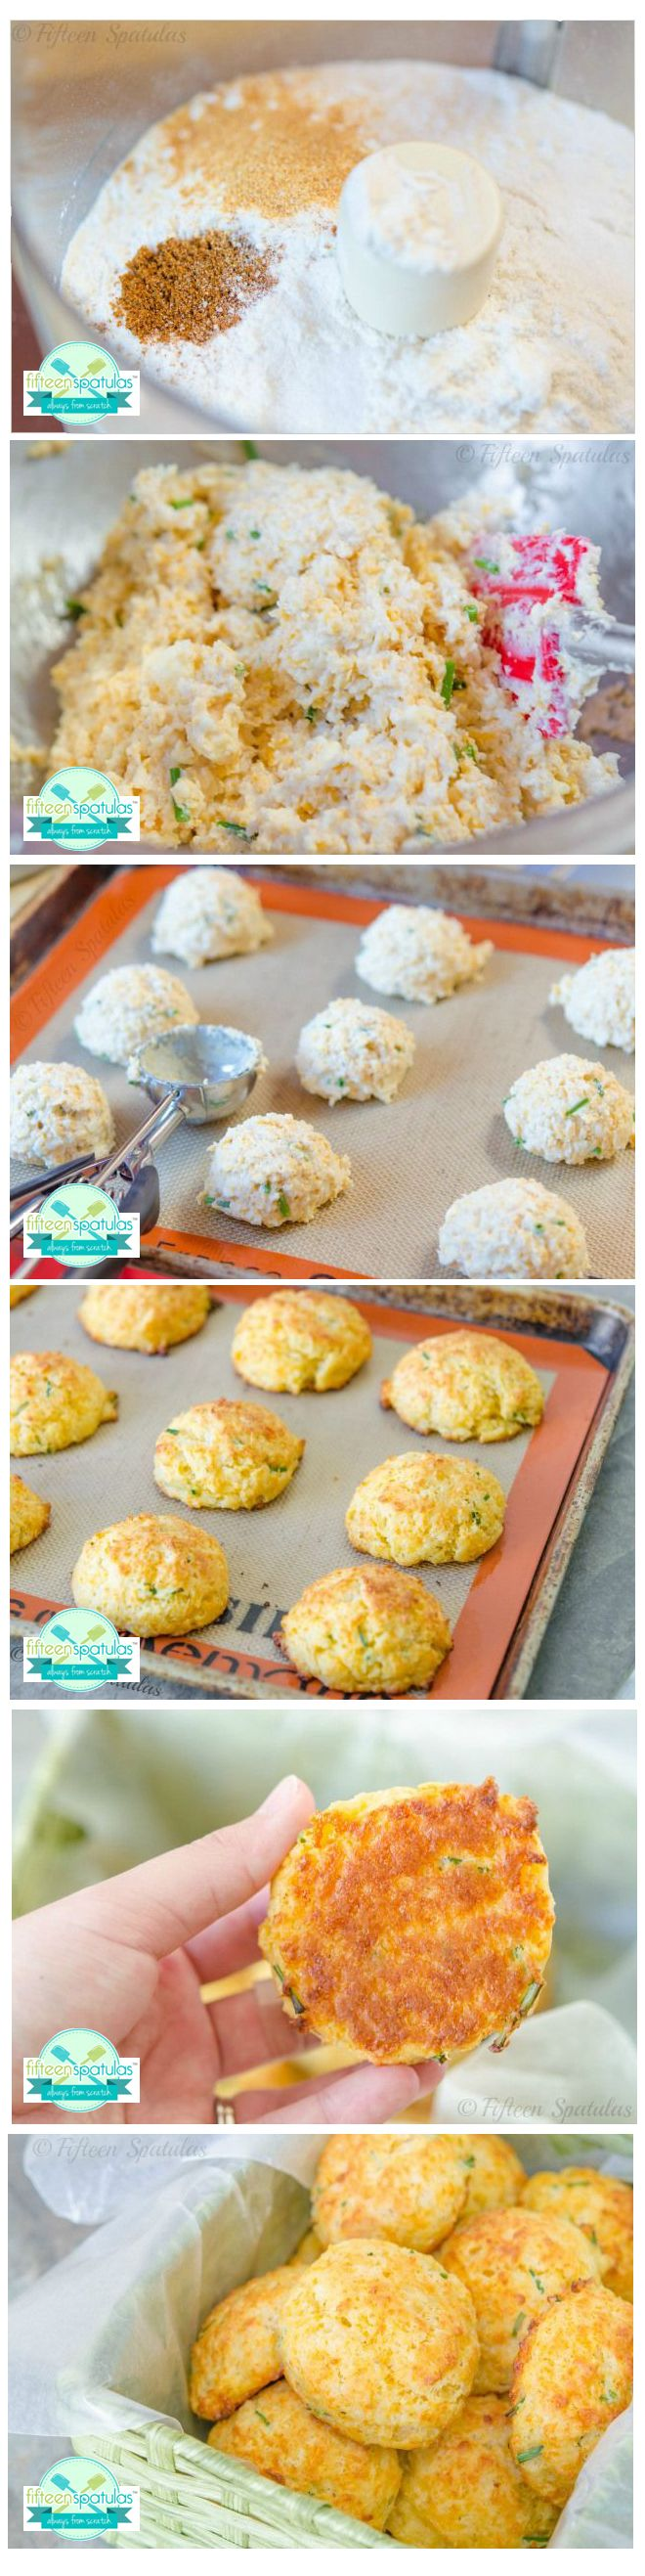 @Fifteen Spatulas | Joanne Ozug likes her cheddar biscuits from scratch. #stepbystep #biscuits #cheddar